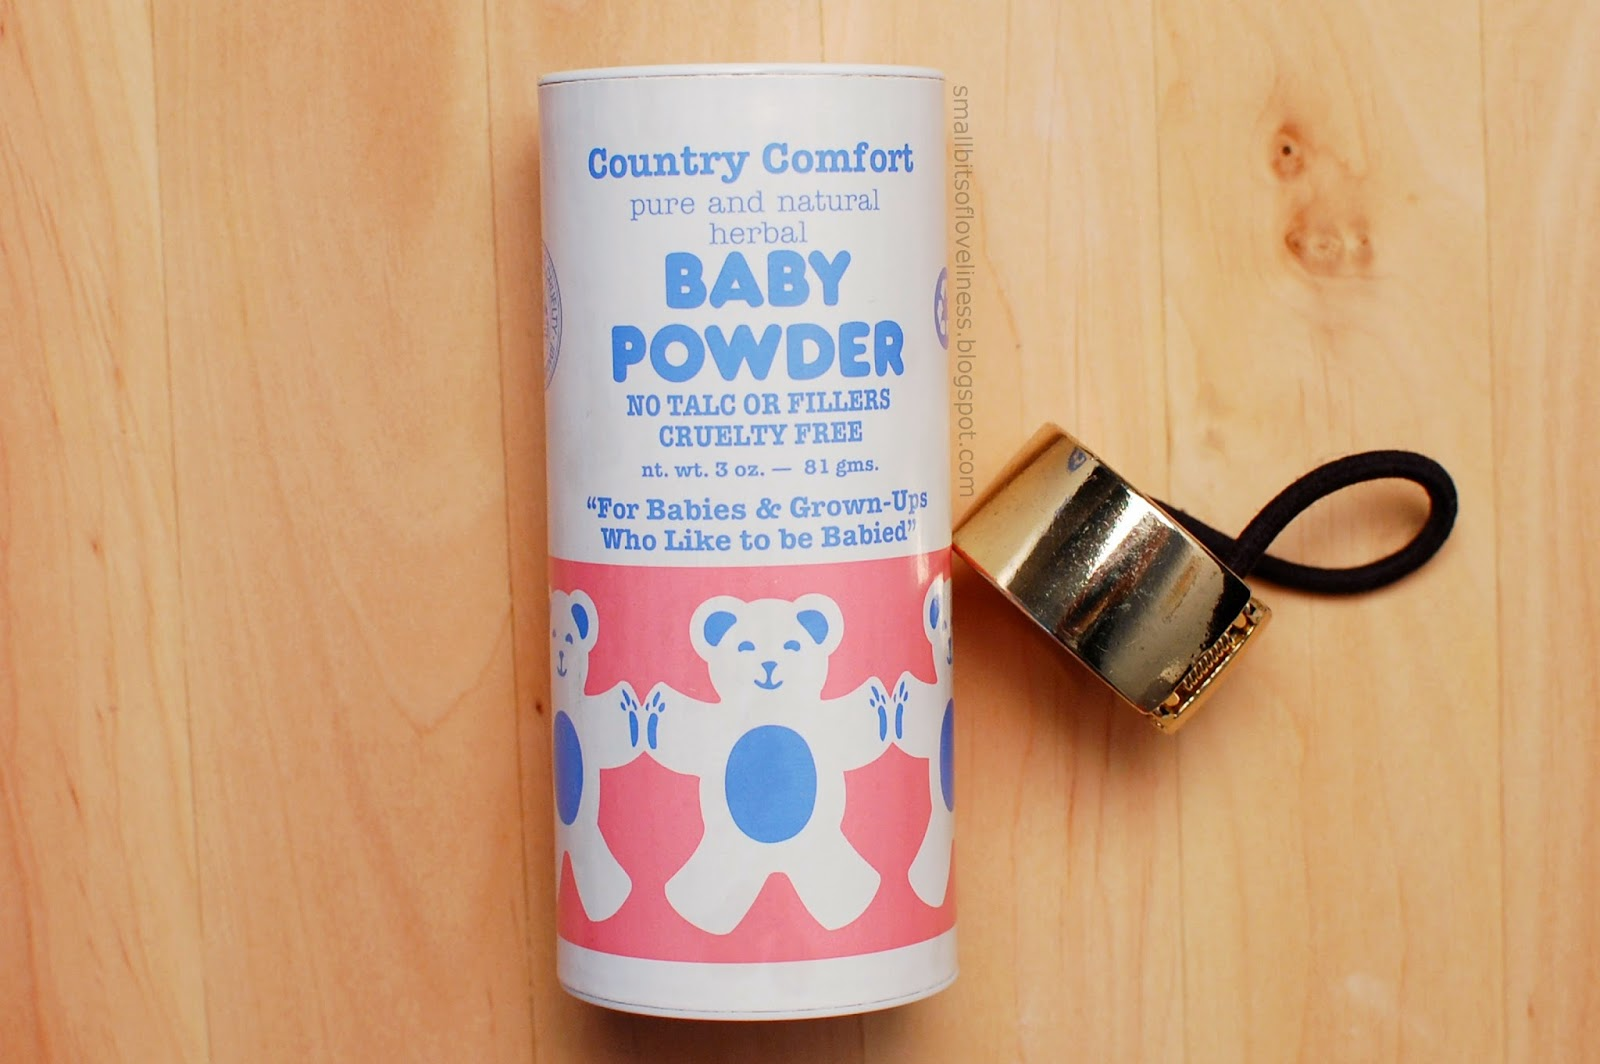 Country Comfort Pure and Natural Herbal Baby Powder